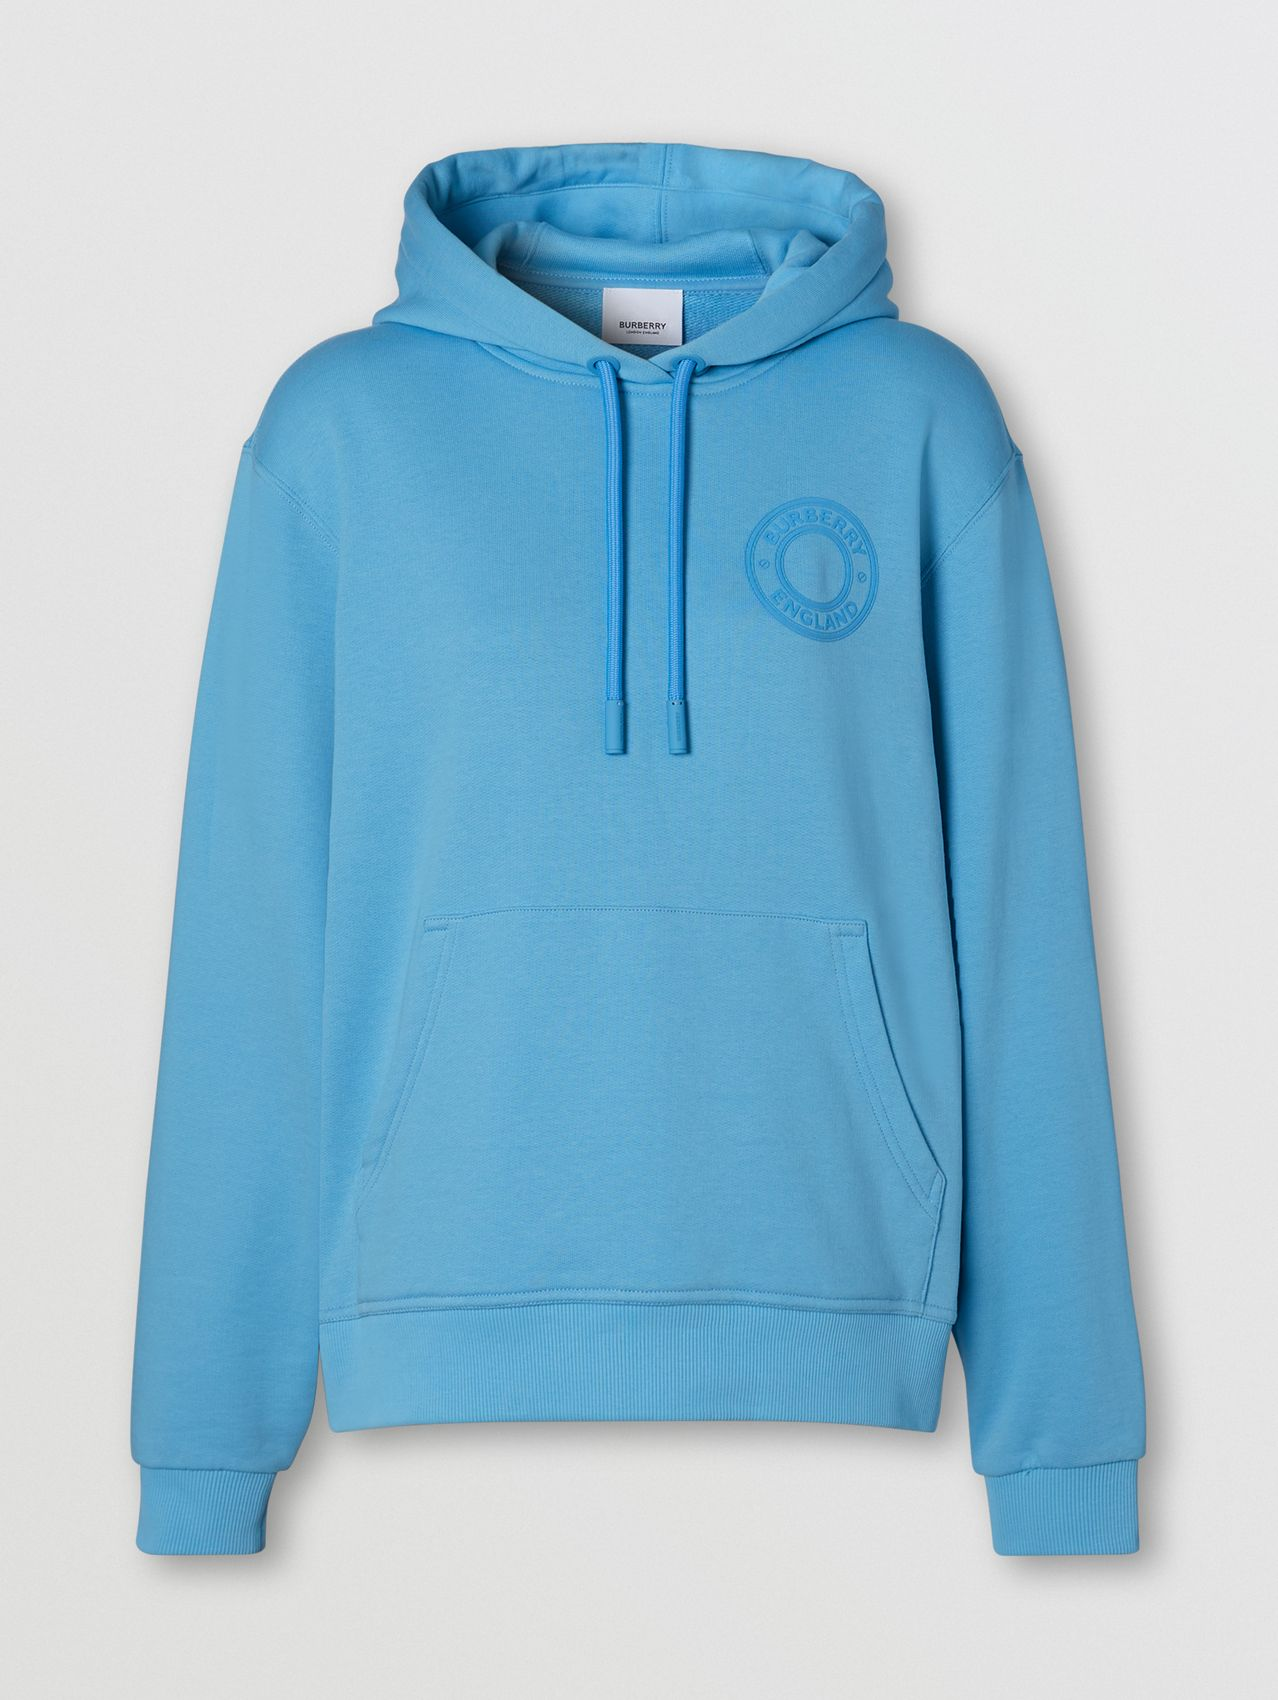 Logo Graphic Cotton Oversized Hoodie in Blue Topaz